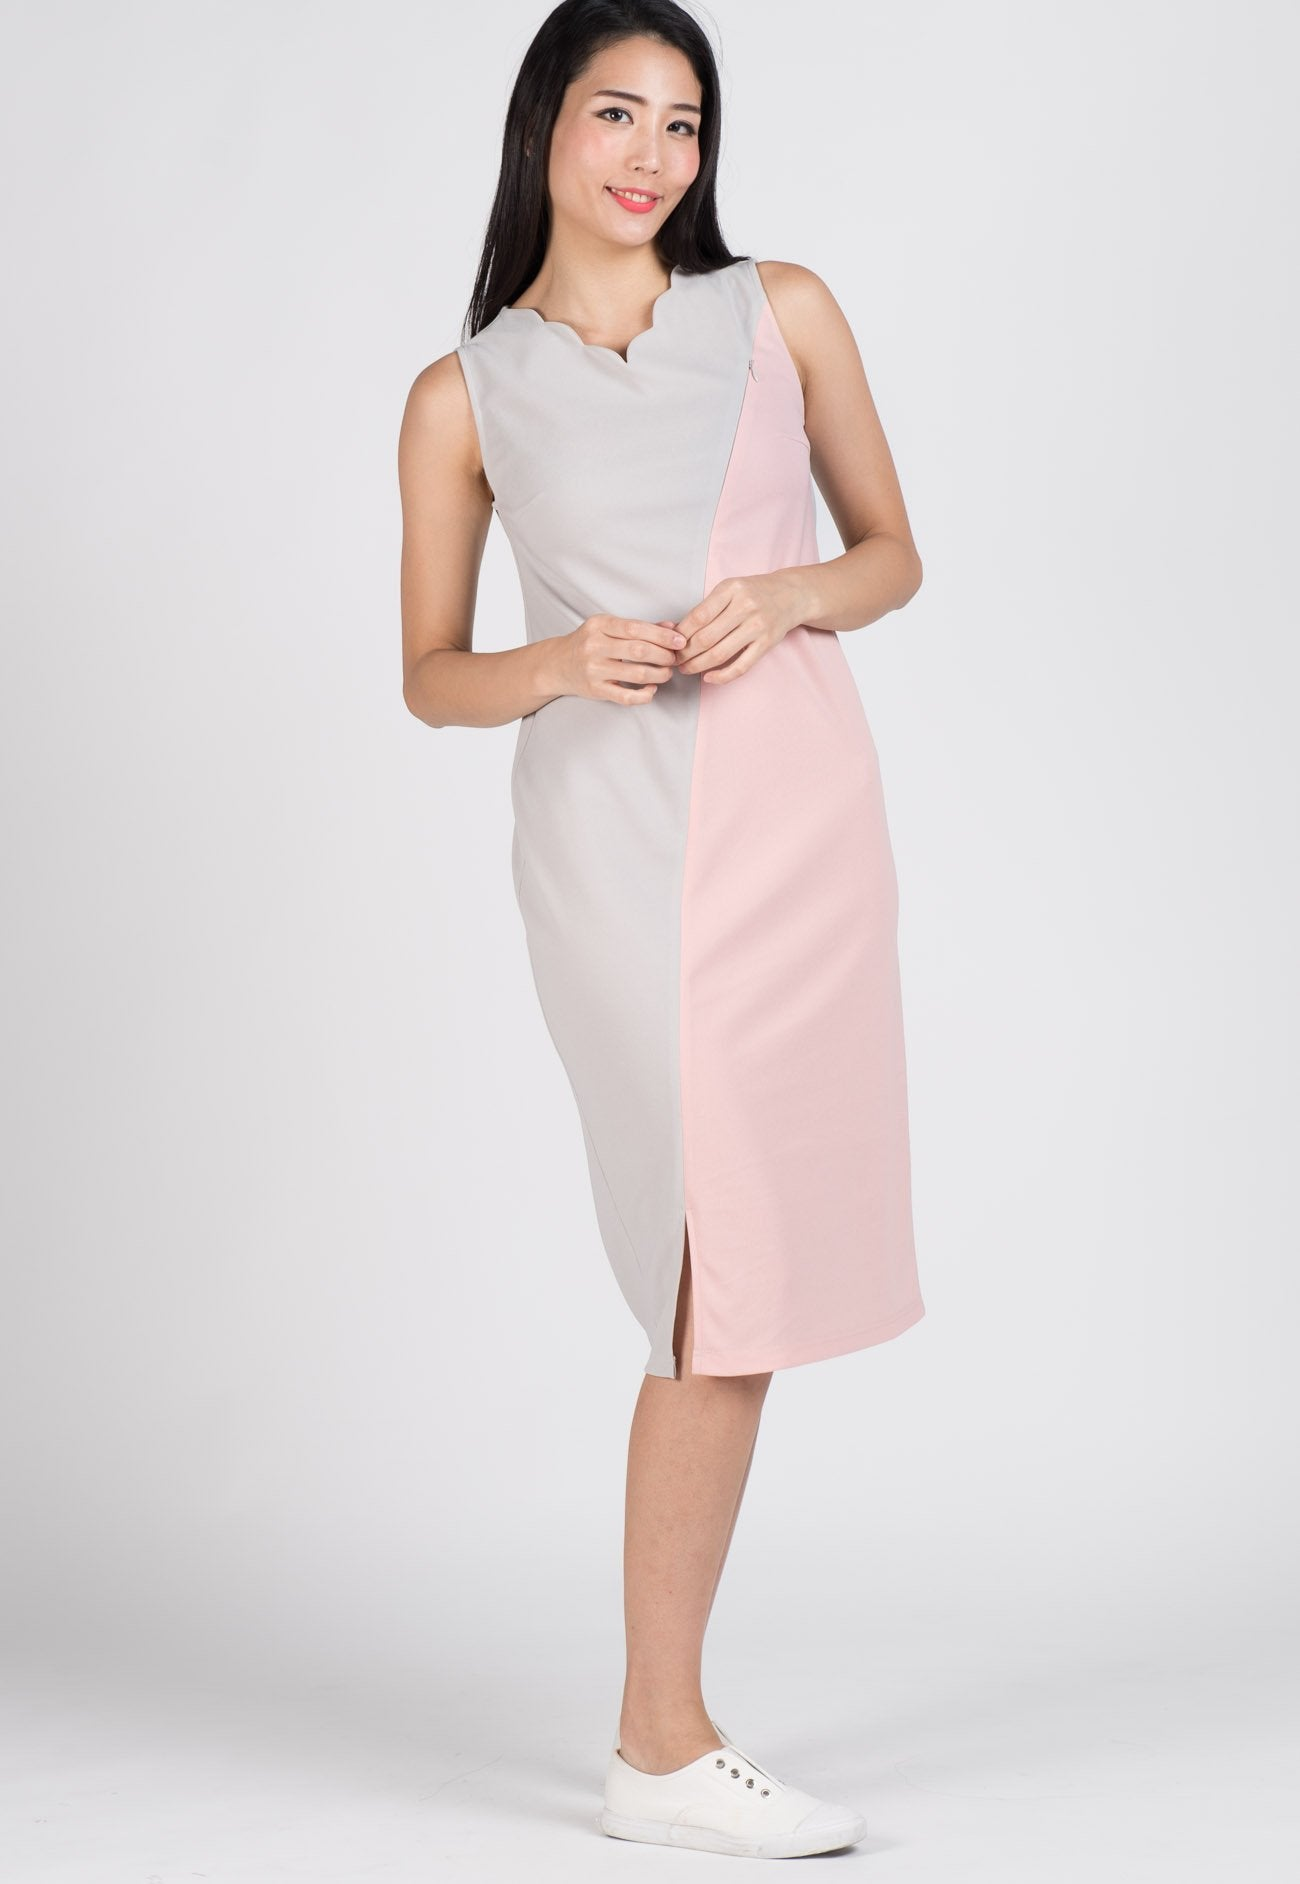 SALE Maddie Scallop Midi Nursing Dress Nursing Wear Mothercot